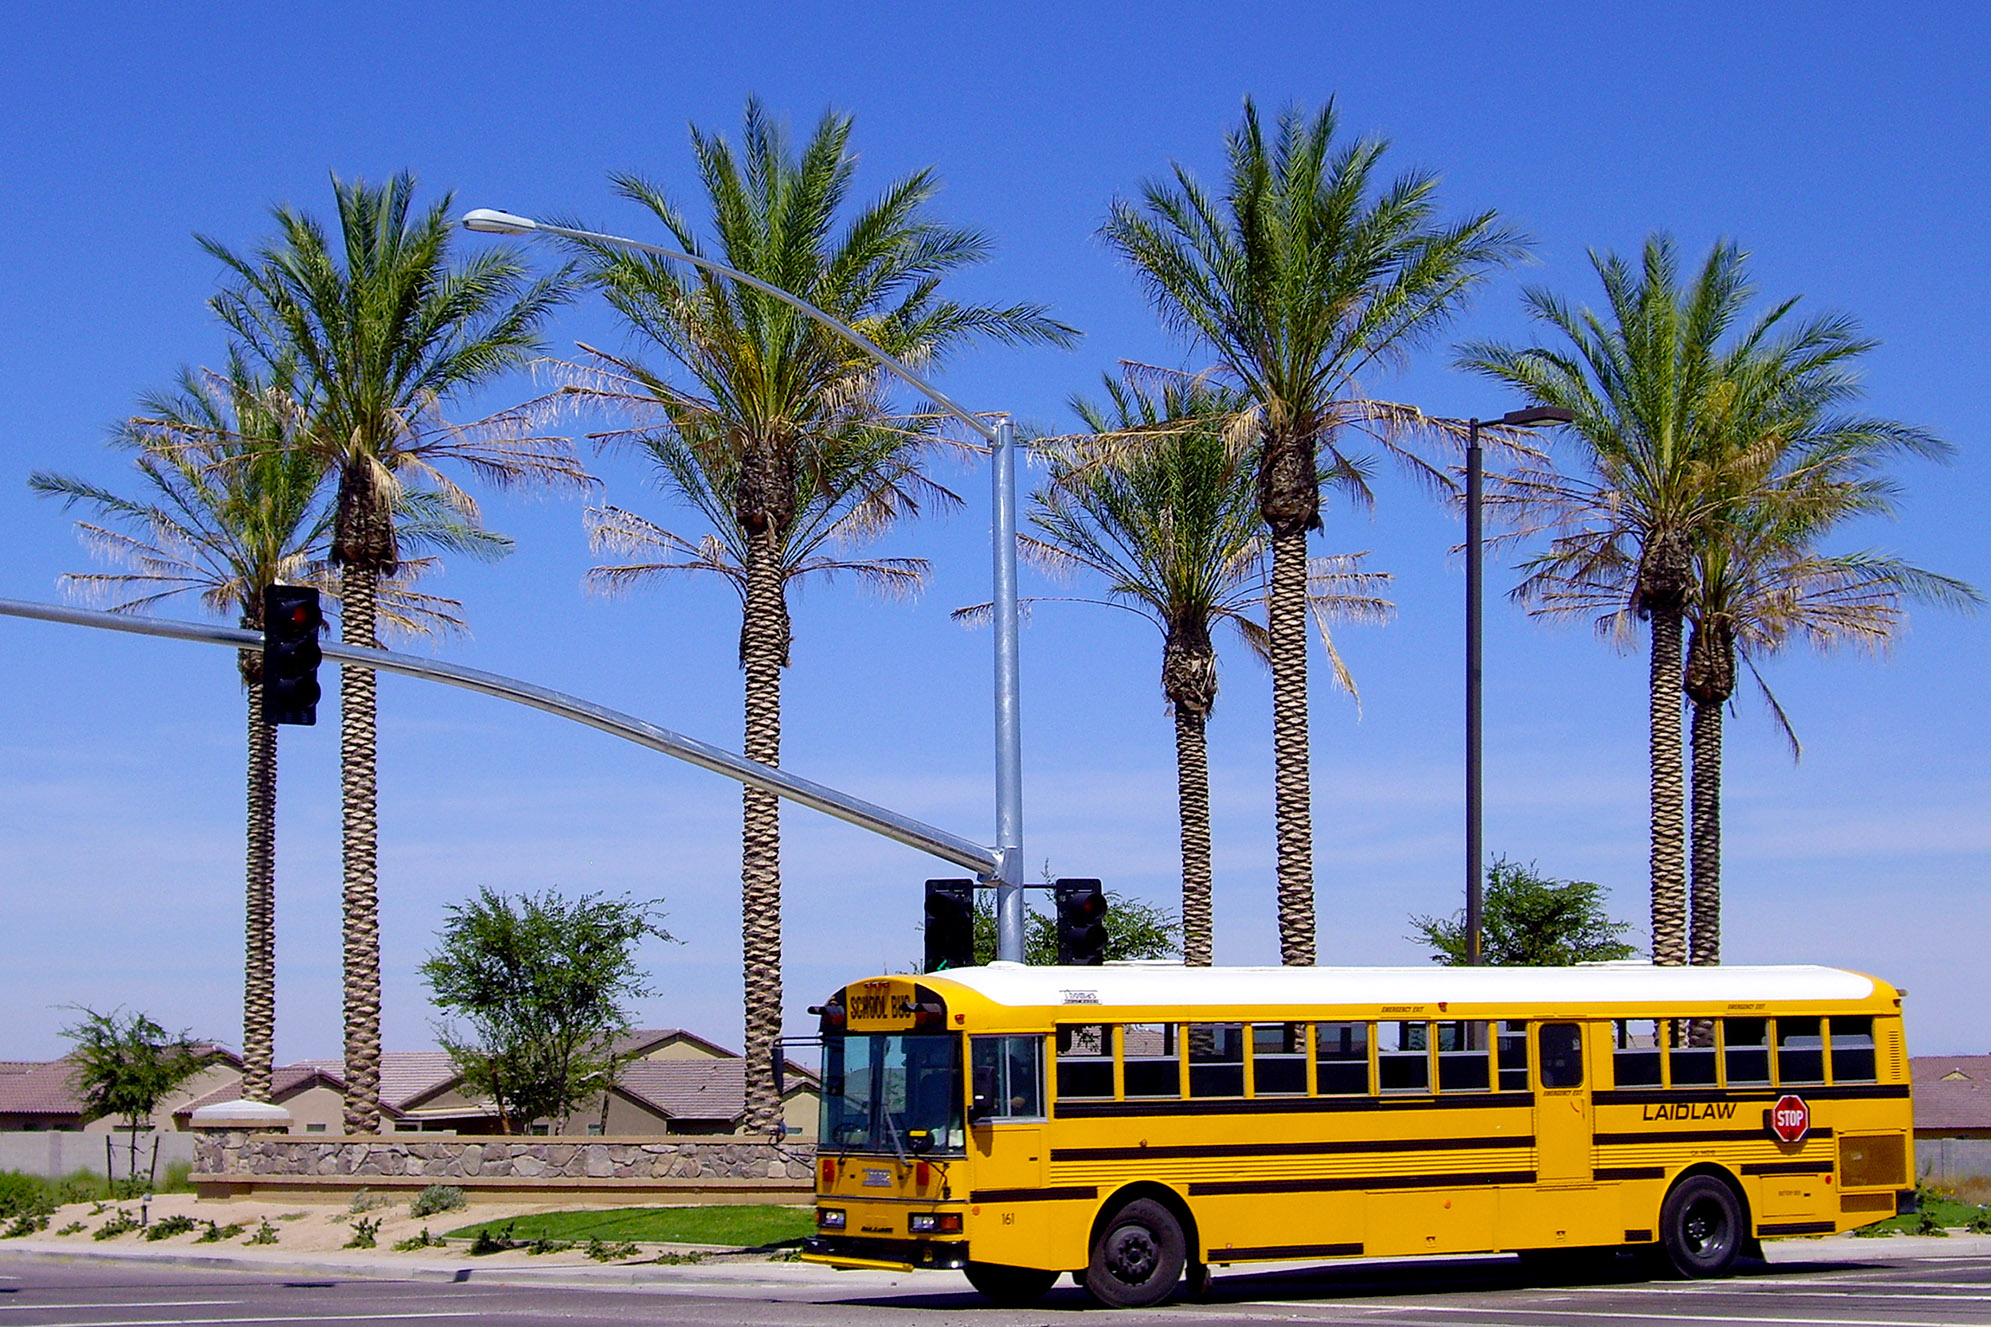 Queen Creek Arizona Skolbuss